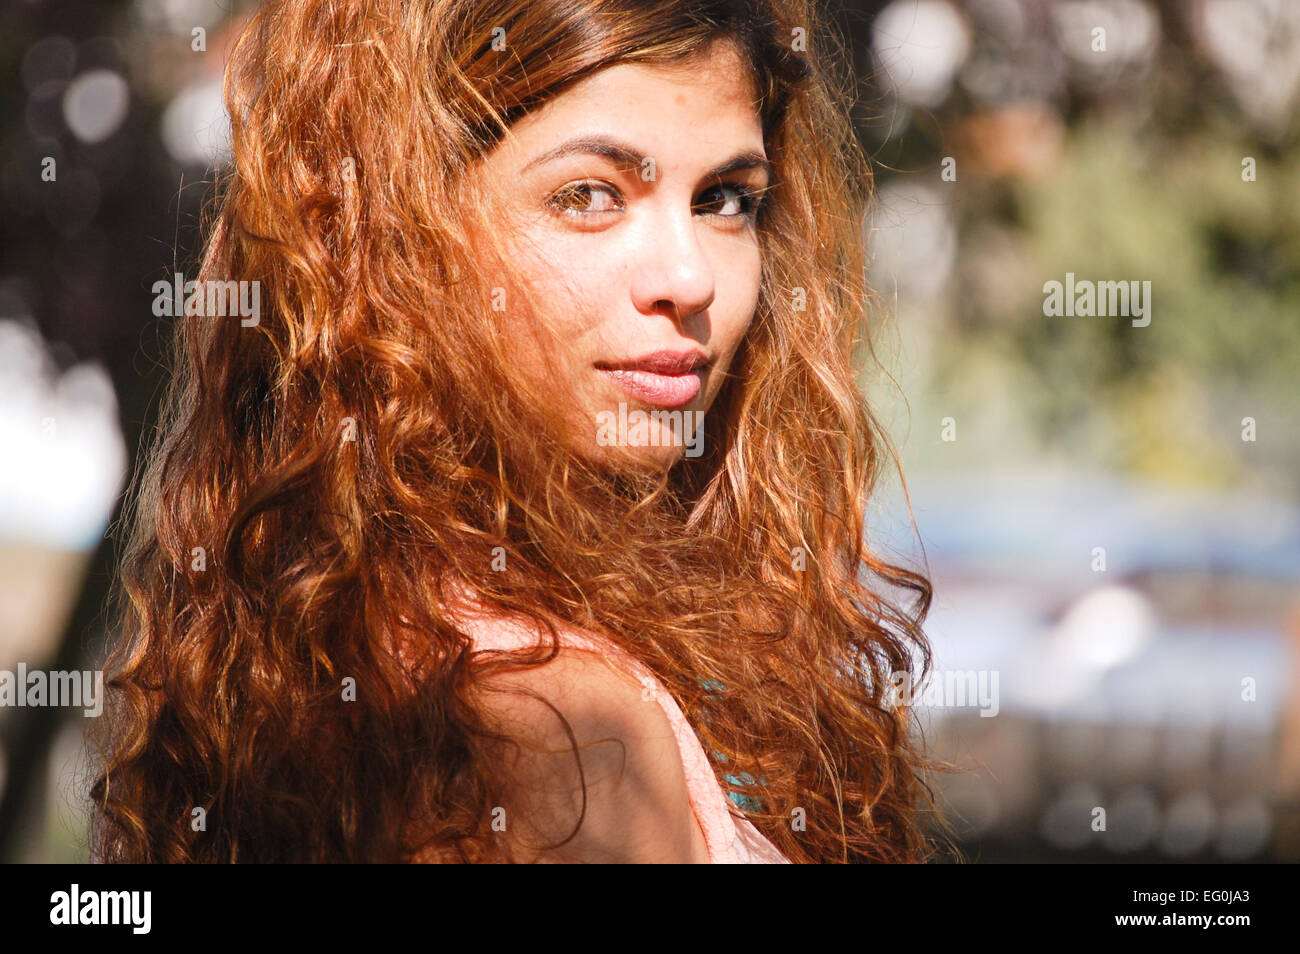 Portrait of long haired woman in sunlight - Stock Image